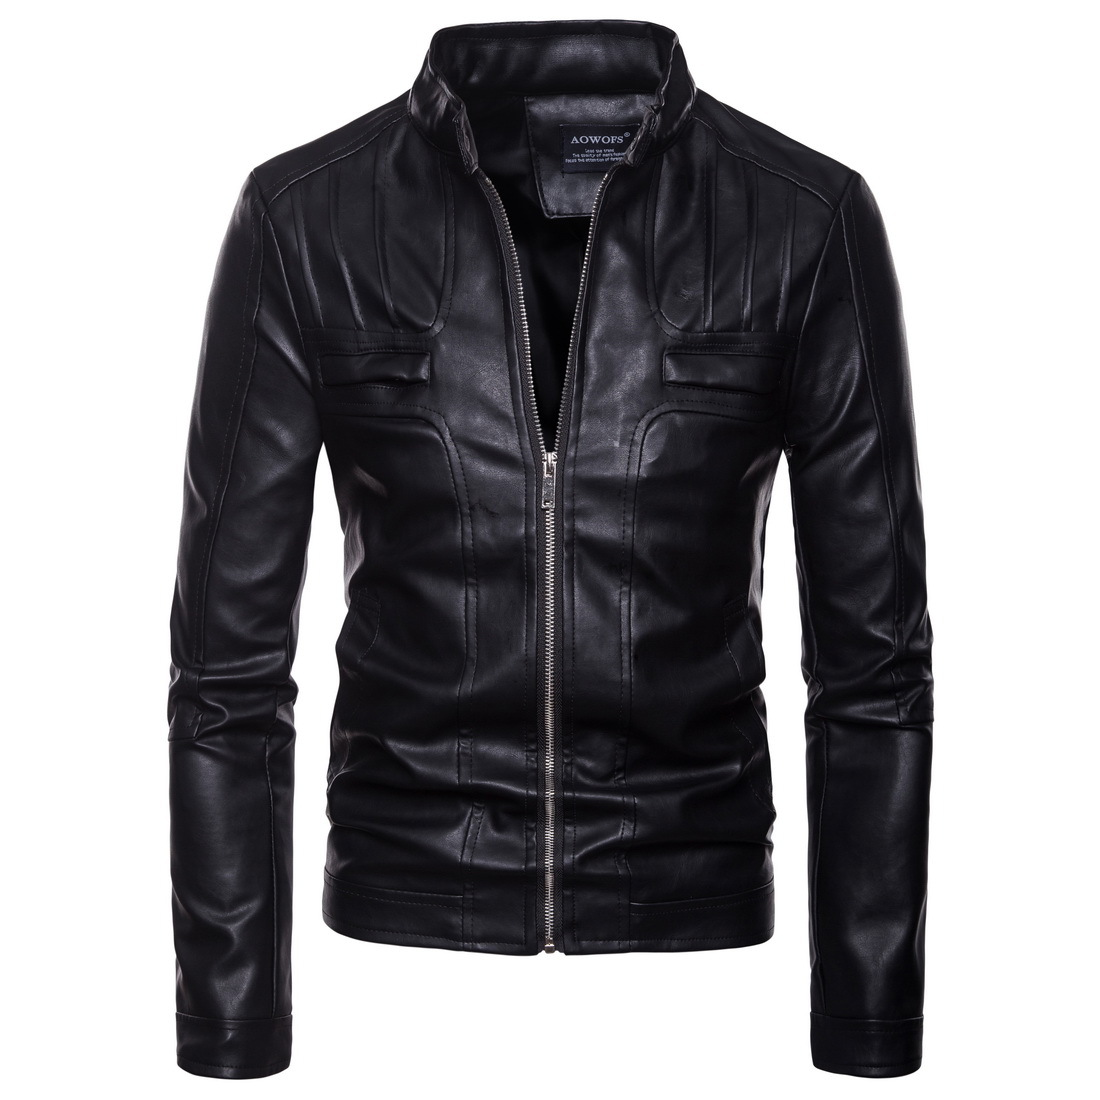 Men's Dropshipping High-grade Leather Jackets Fashion Motorcycle Biker Top Coat Men Outerwear Male Jacket Mens Brand Clothes